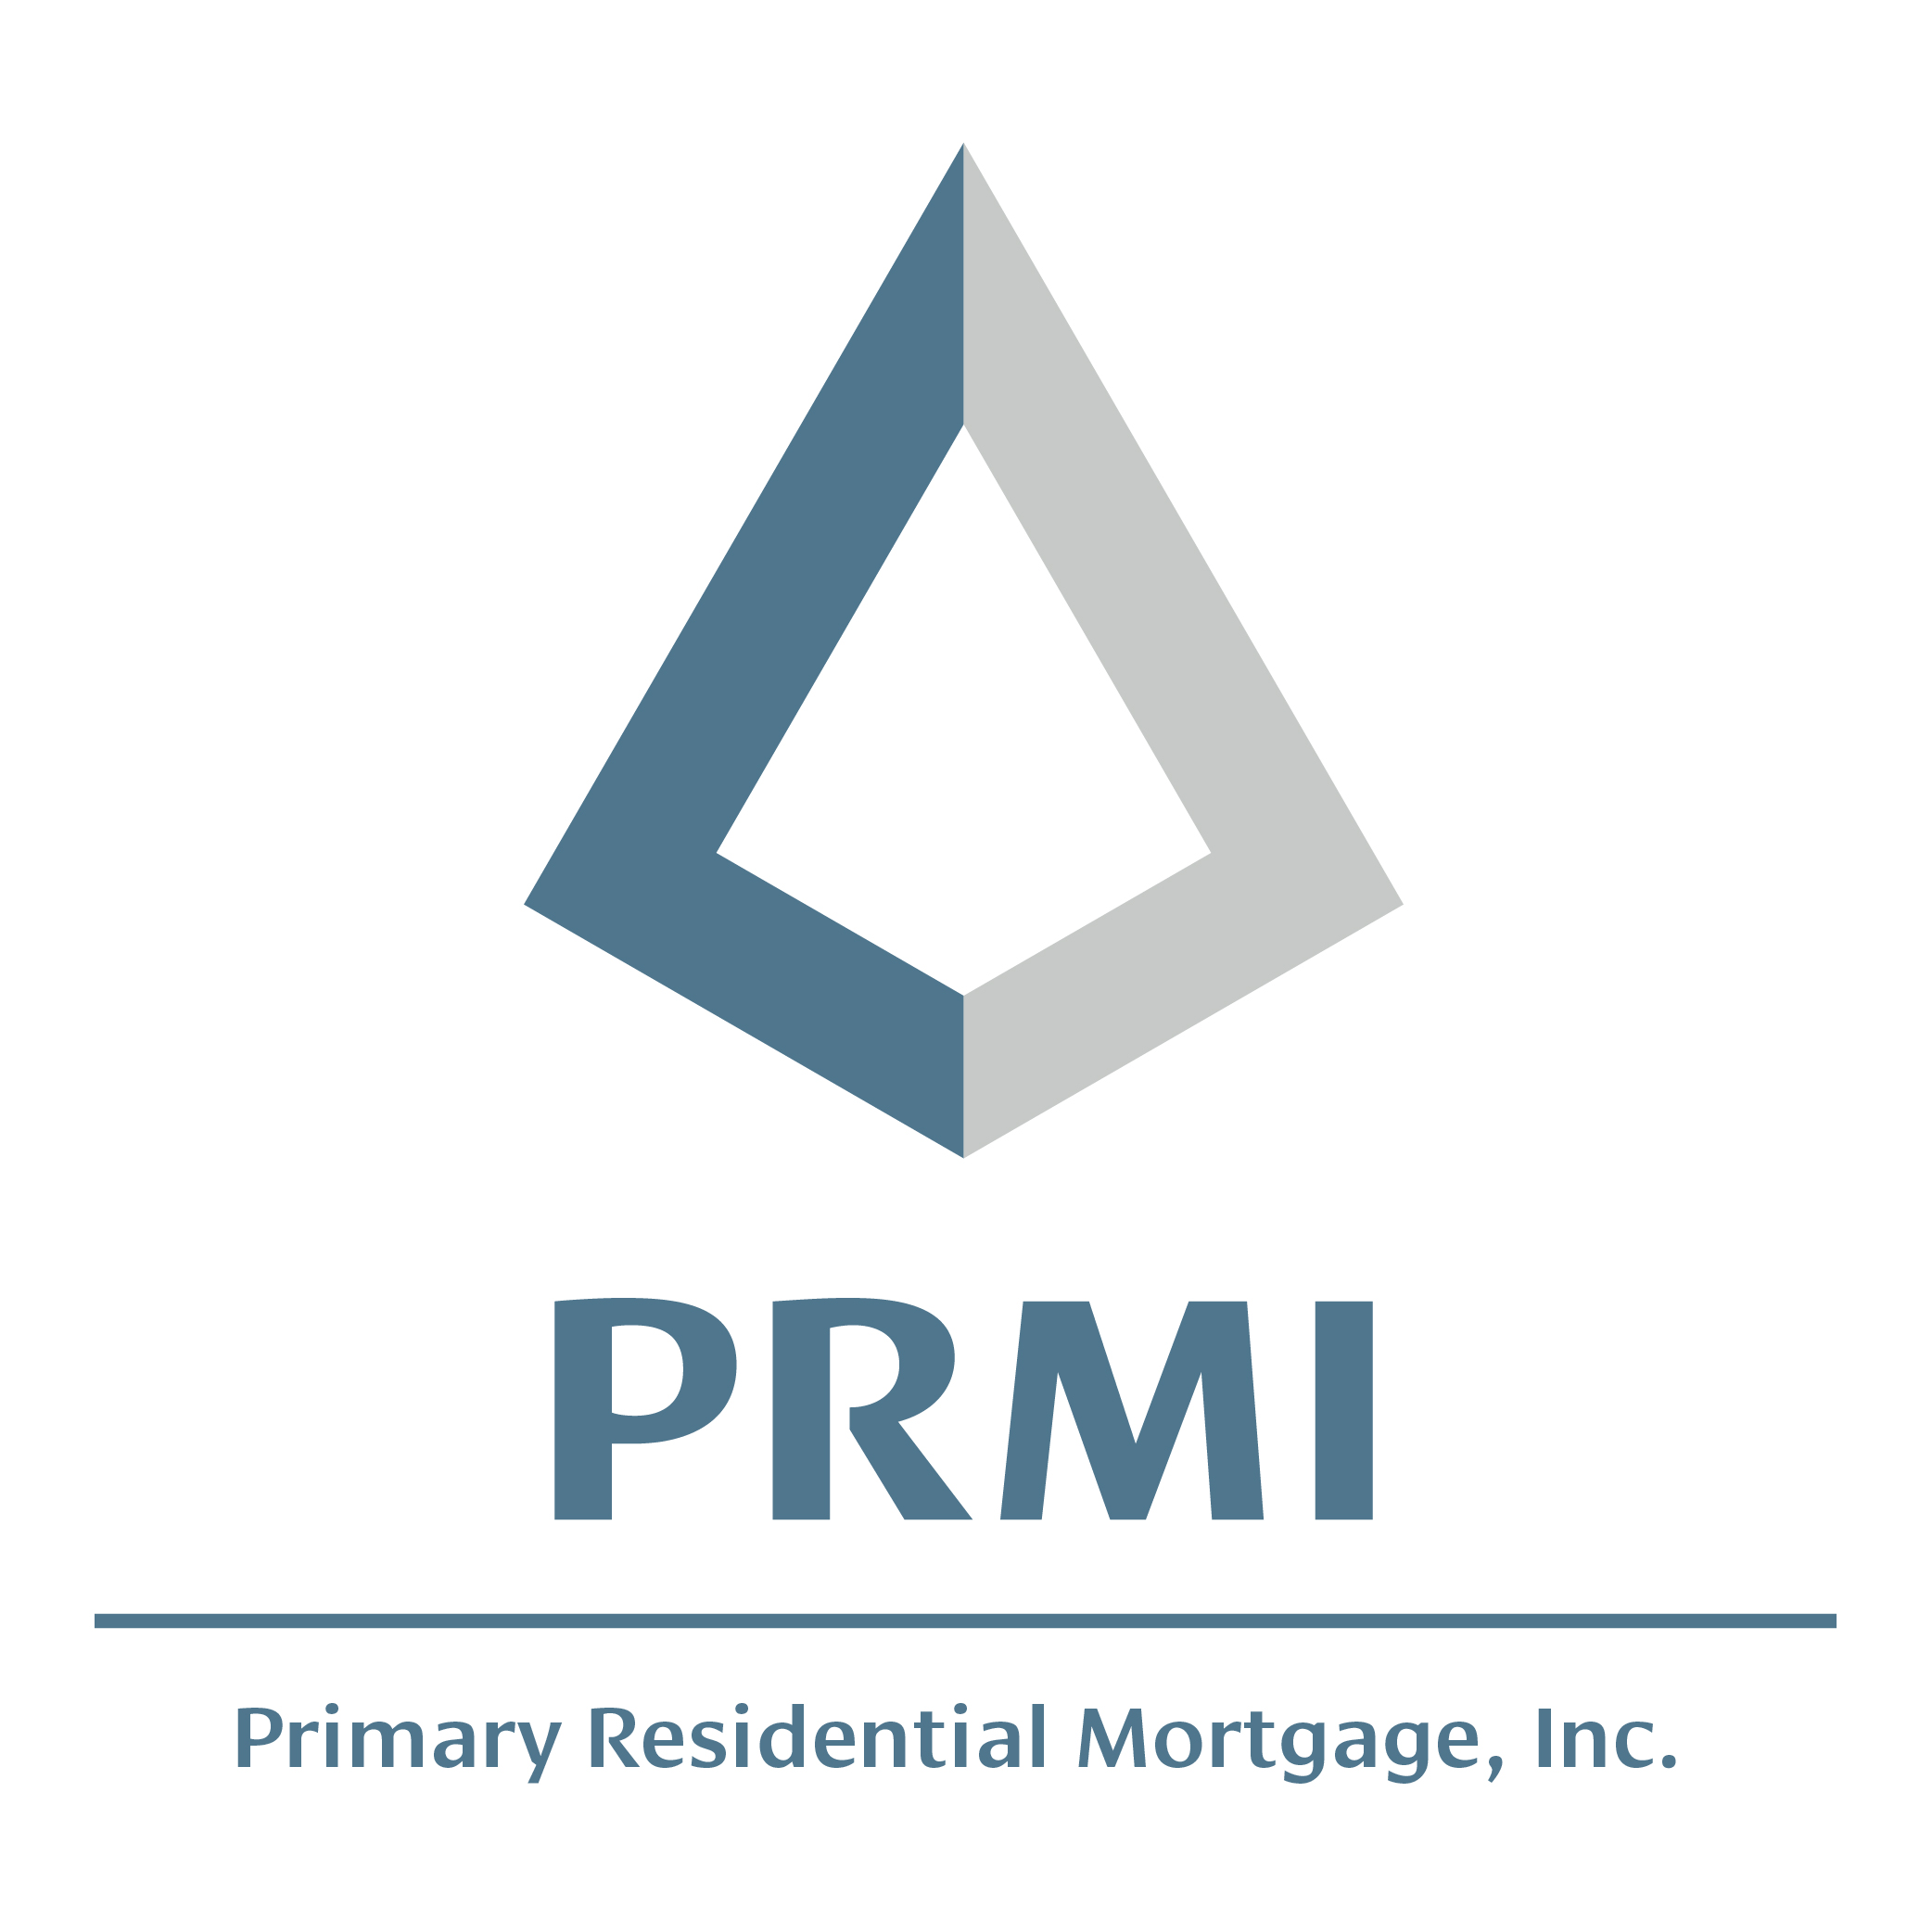 Primary Residential Mortgage, Inc. - Houston, TX 77084 - (281)248-2100 | ShowMeLocal.com